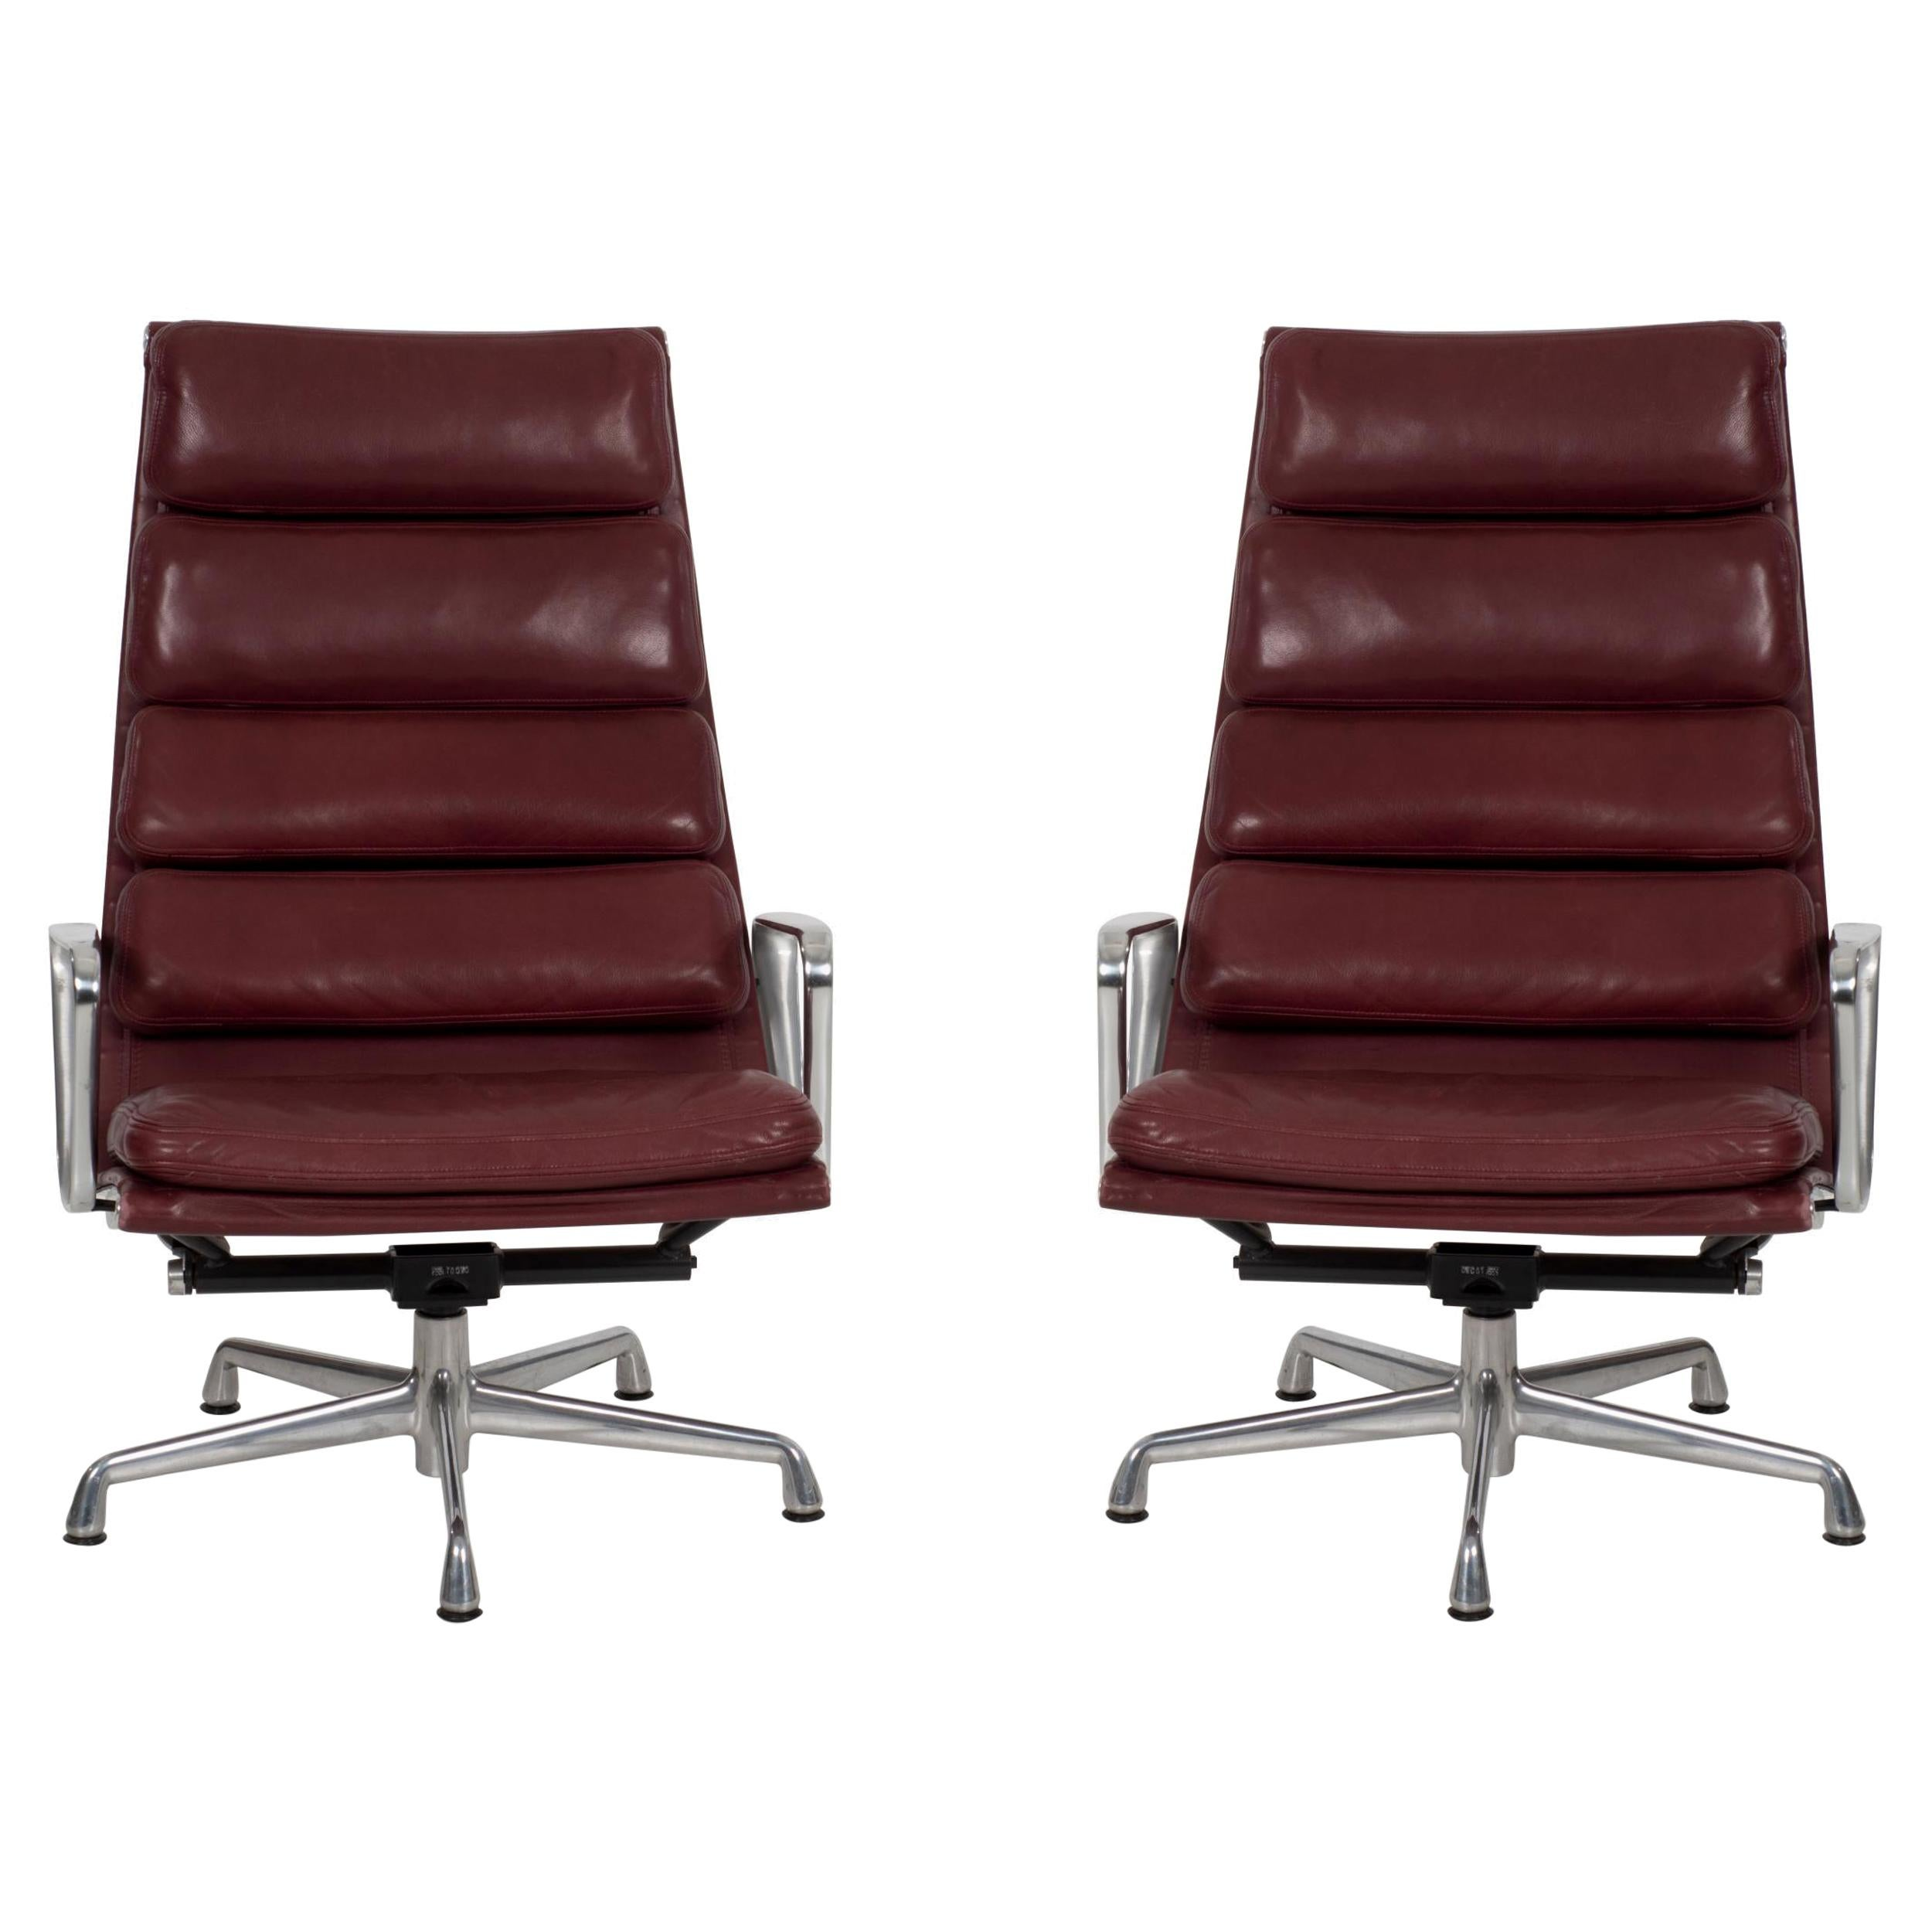 Charles Eames Soft Pad Lounge Chairs